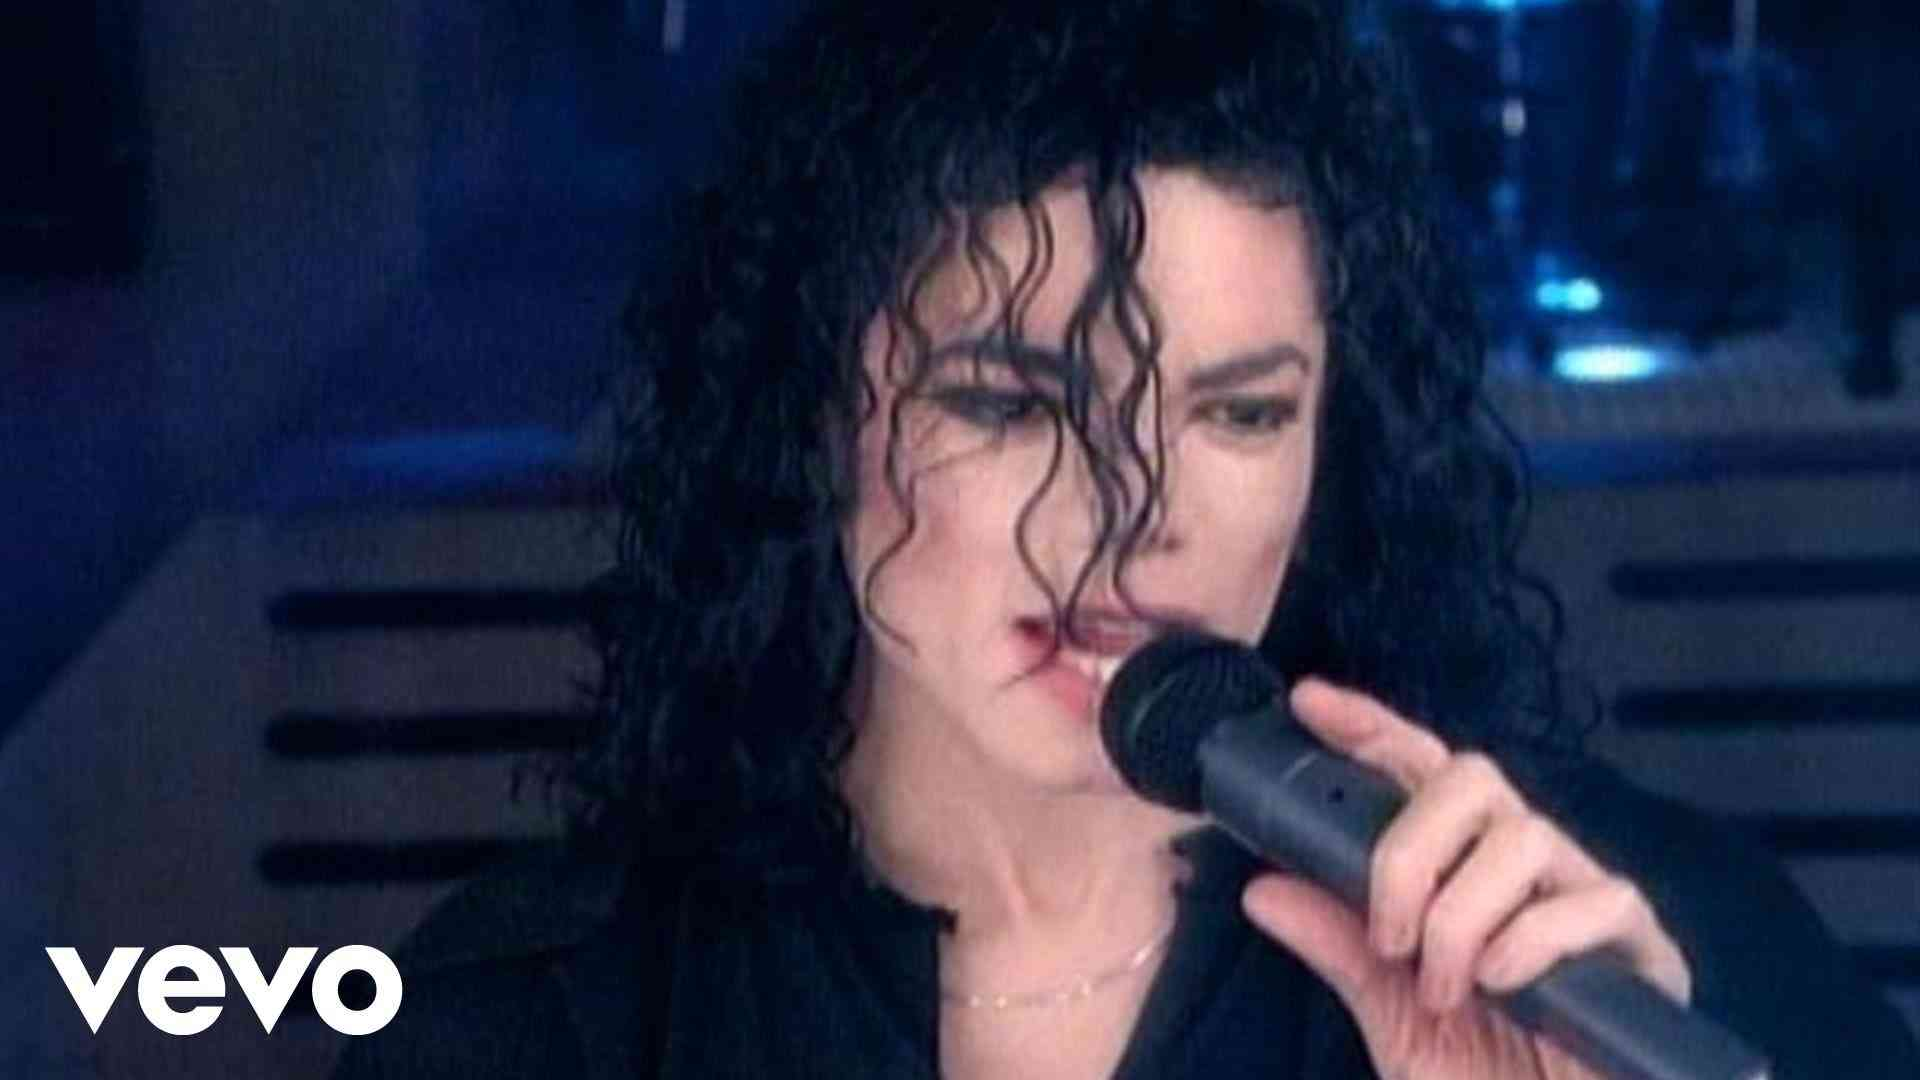 Michael Jackson - Give In To Me (Official Video) - YouTube